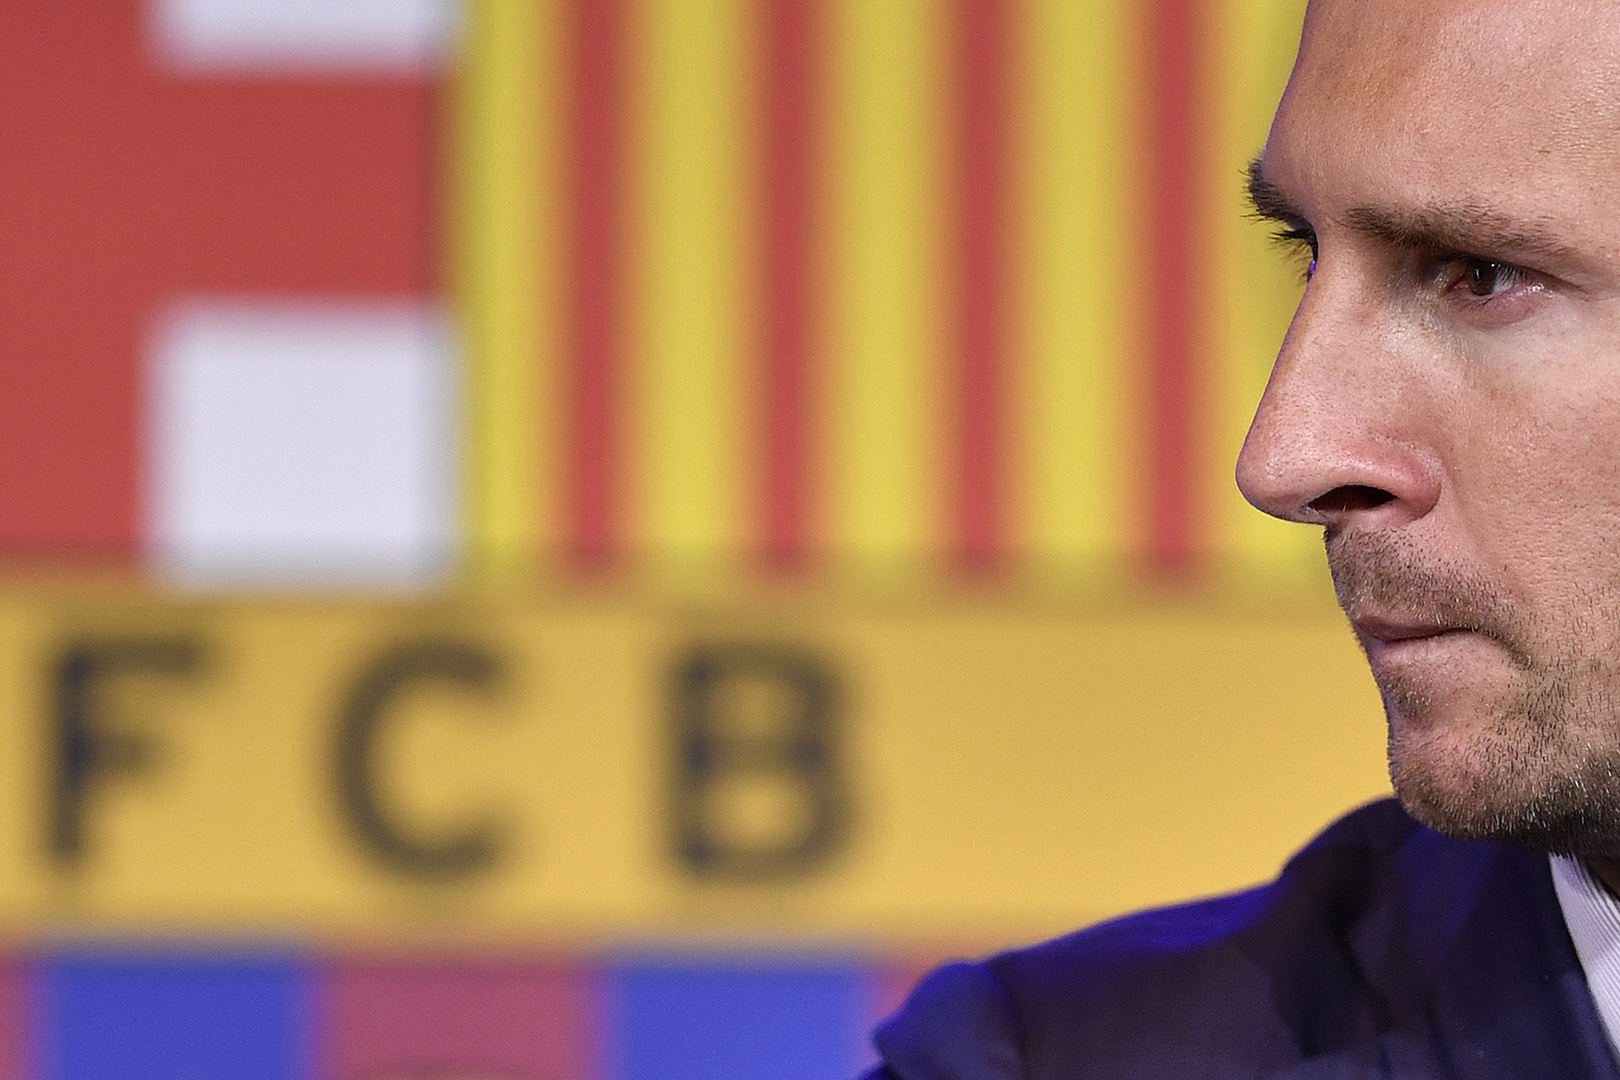 A new development .. and 3 points that prevent the termination of the contract between Messi and Paris